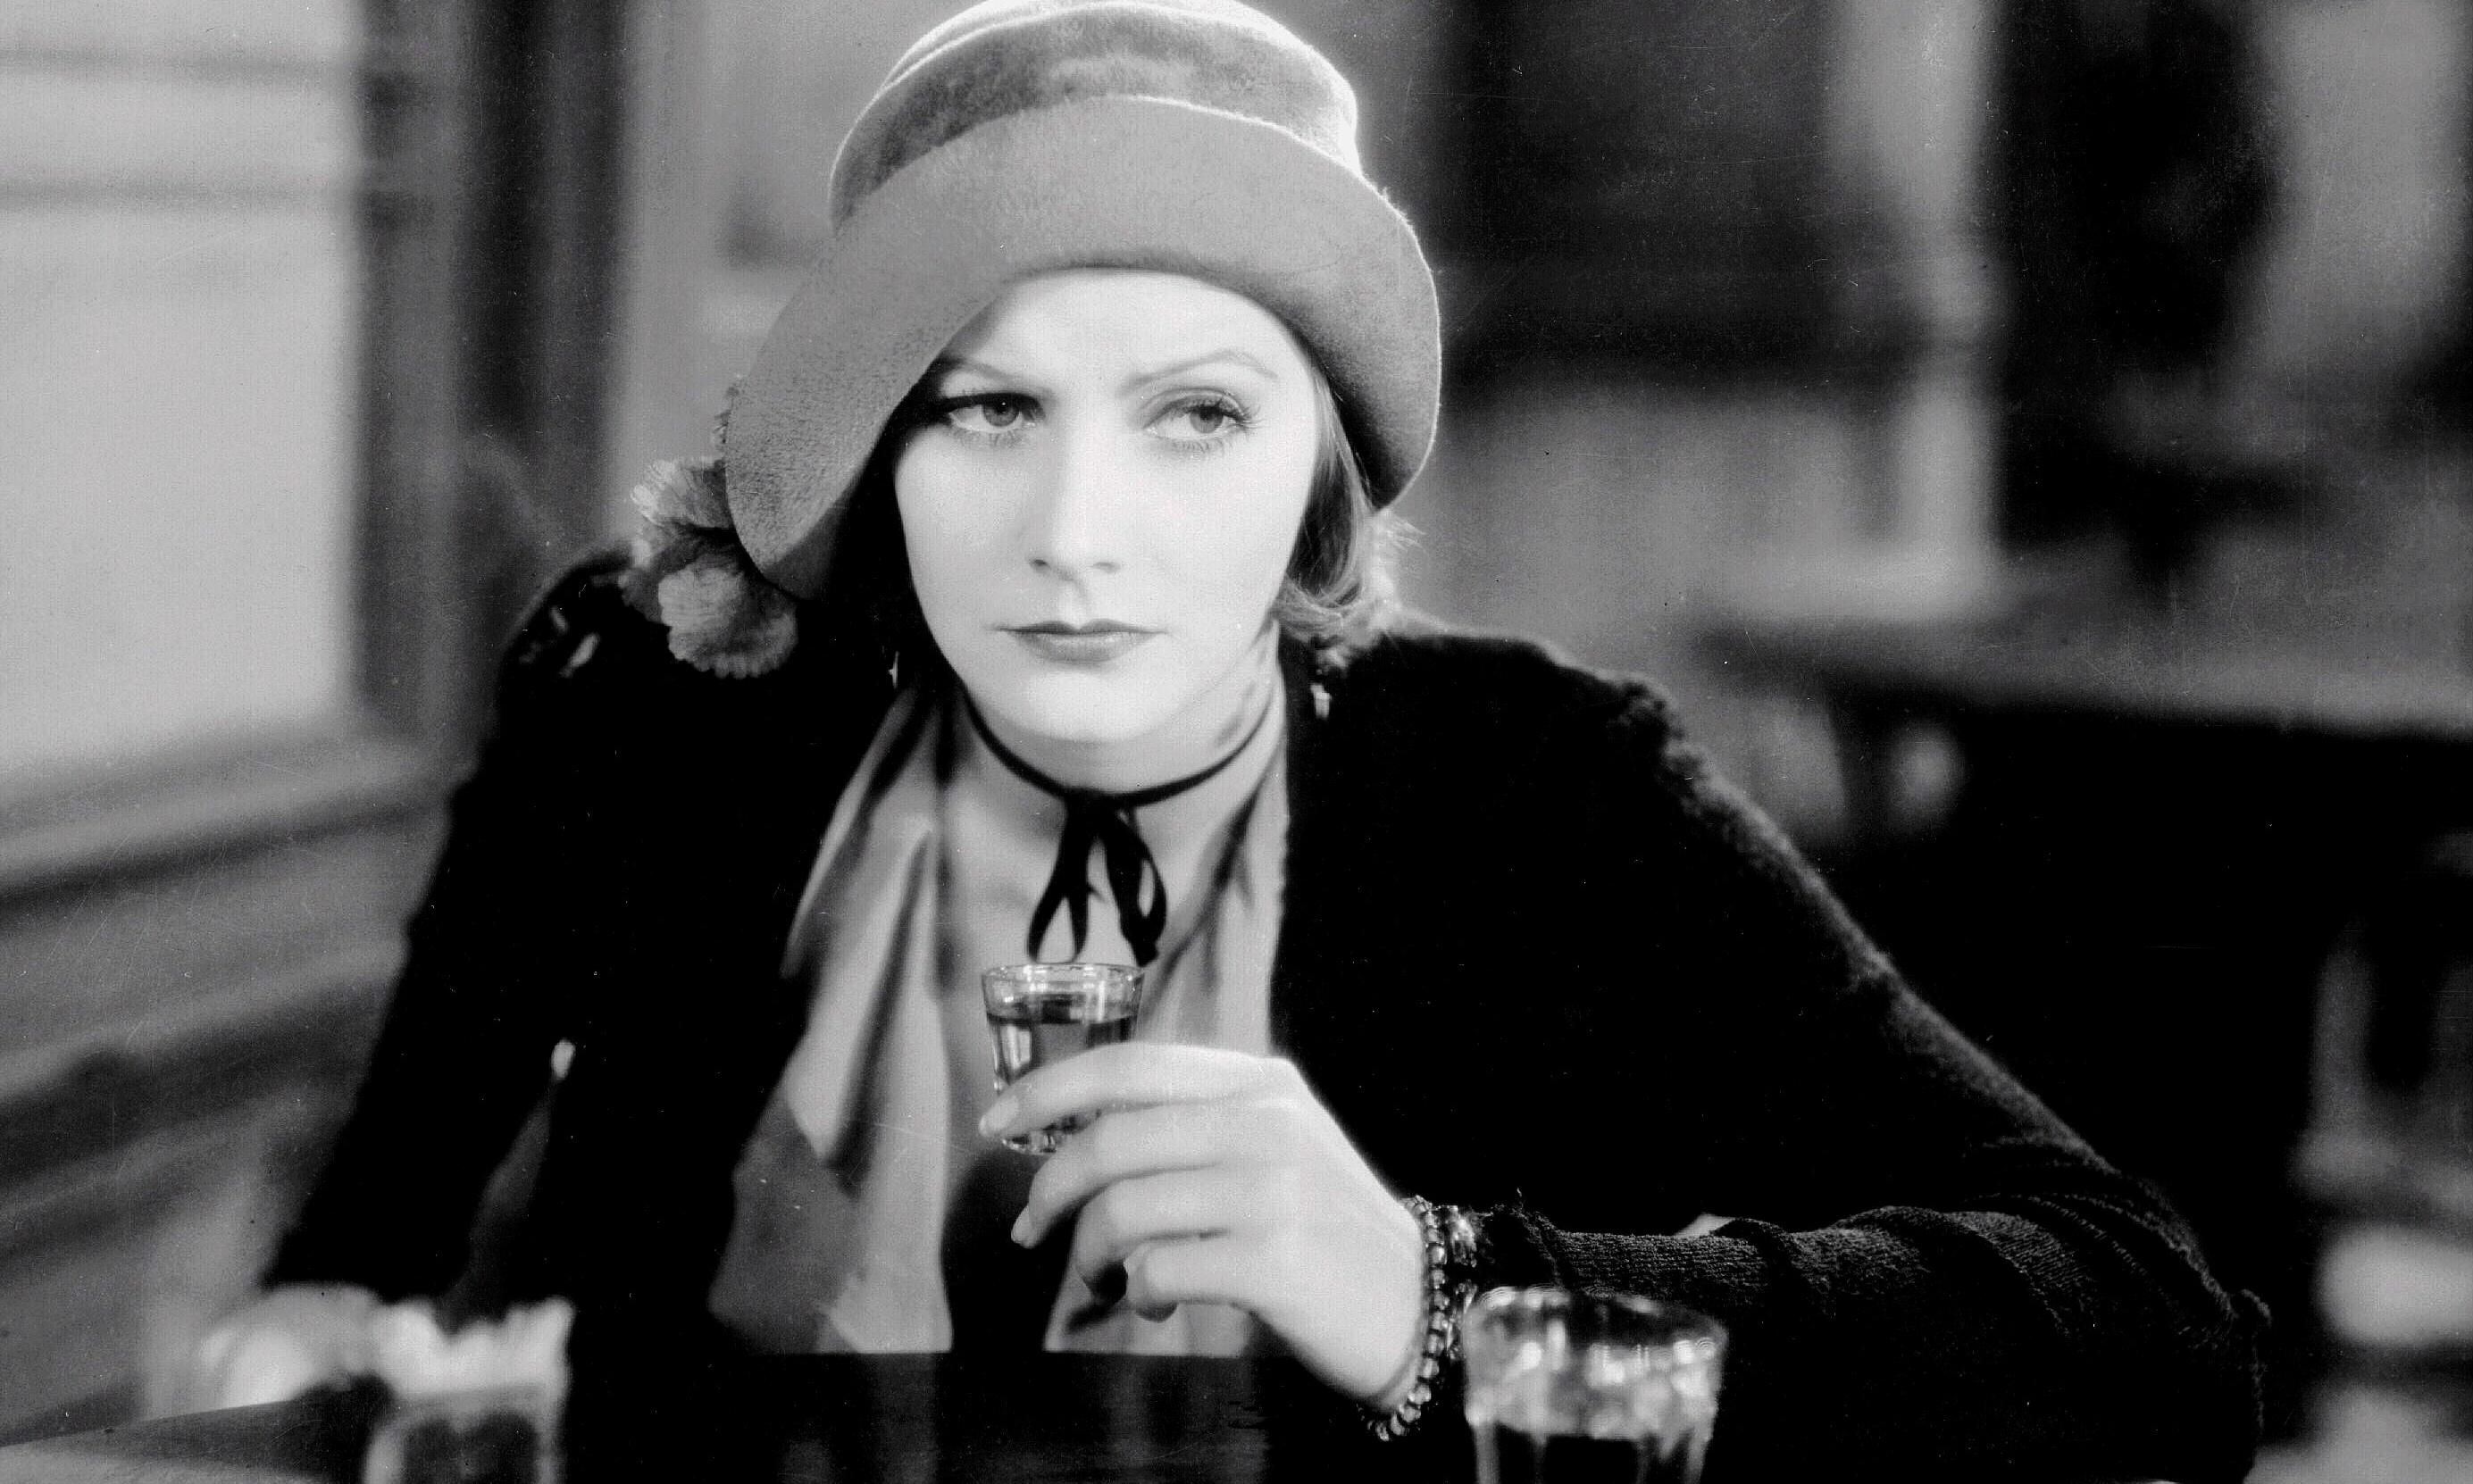 'I go nowhere, I see no one': Garbo letters reveal lonely life of film icon